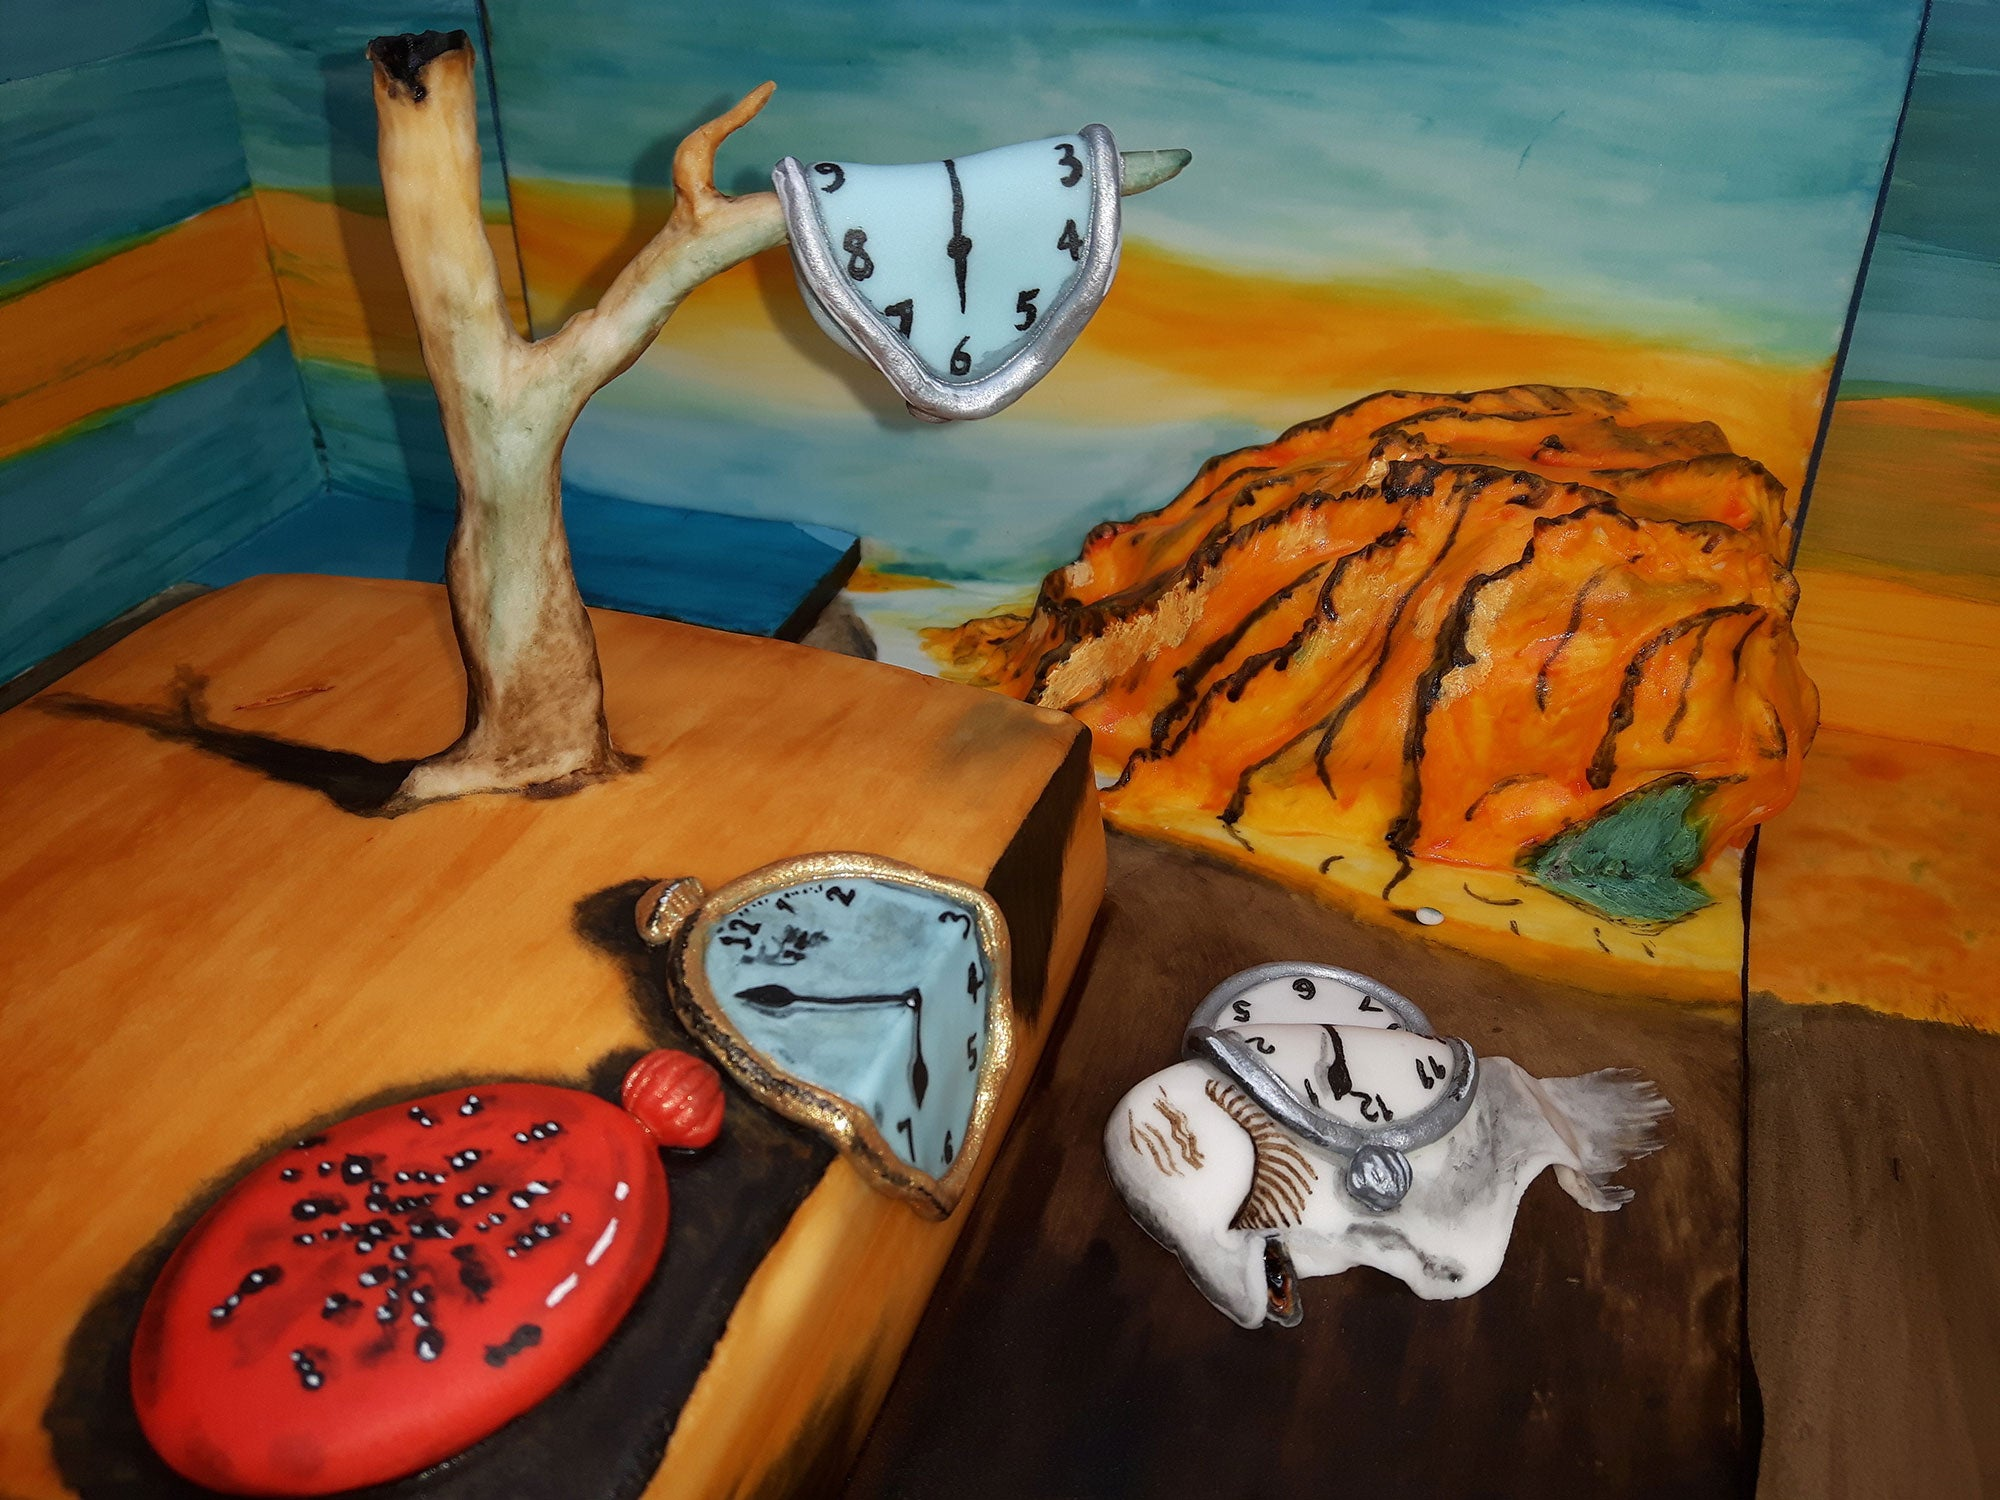 How to Bake Your Very Own Salvador Dalí 'Persistence of Memory' Cake